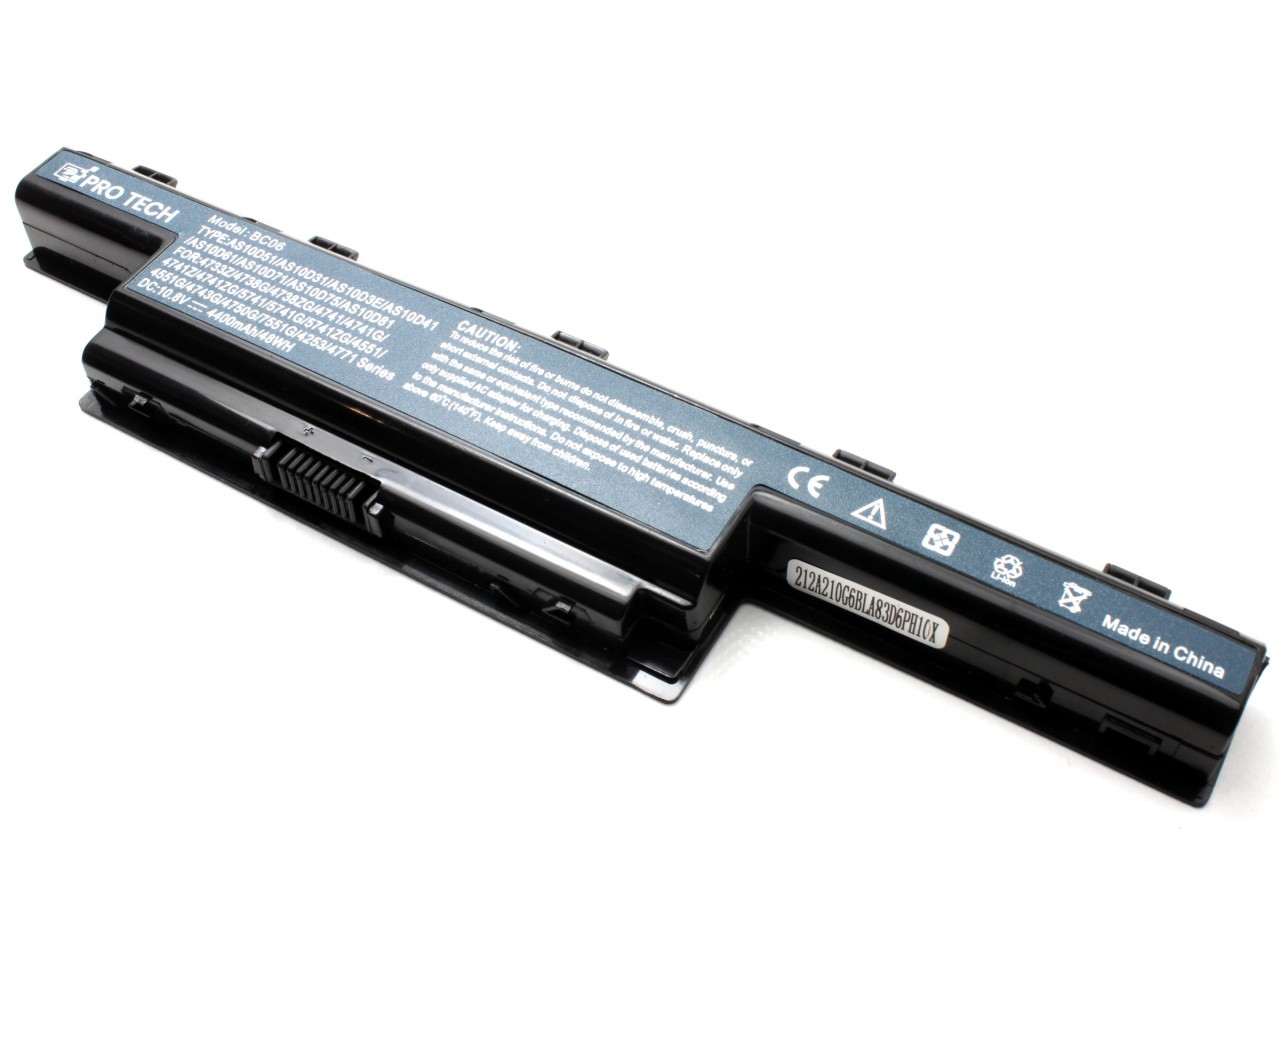 Baterie Packard Bell EasyNote TM89 9 celule imagine powerlaptop.ro 2021